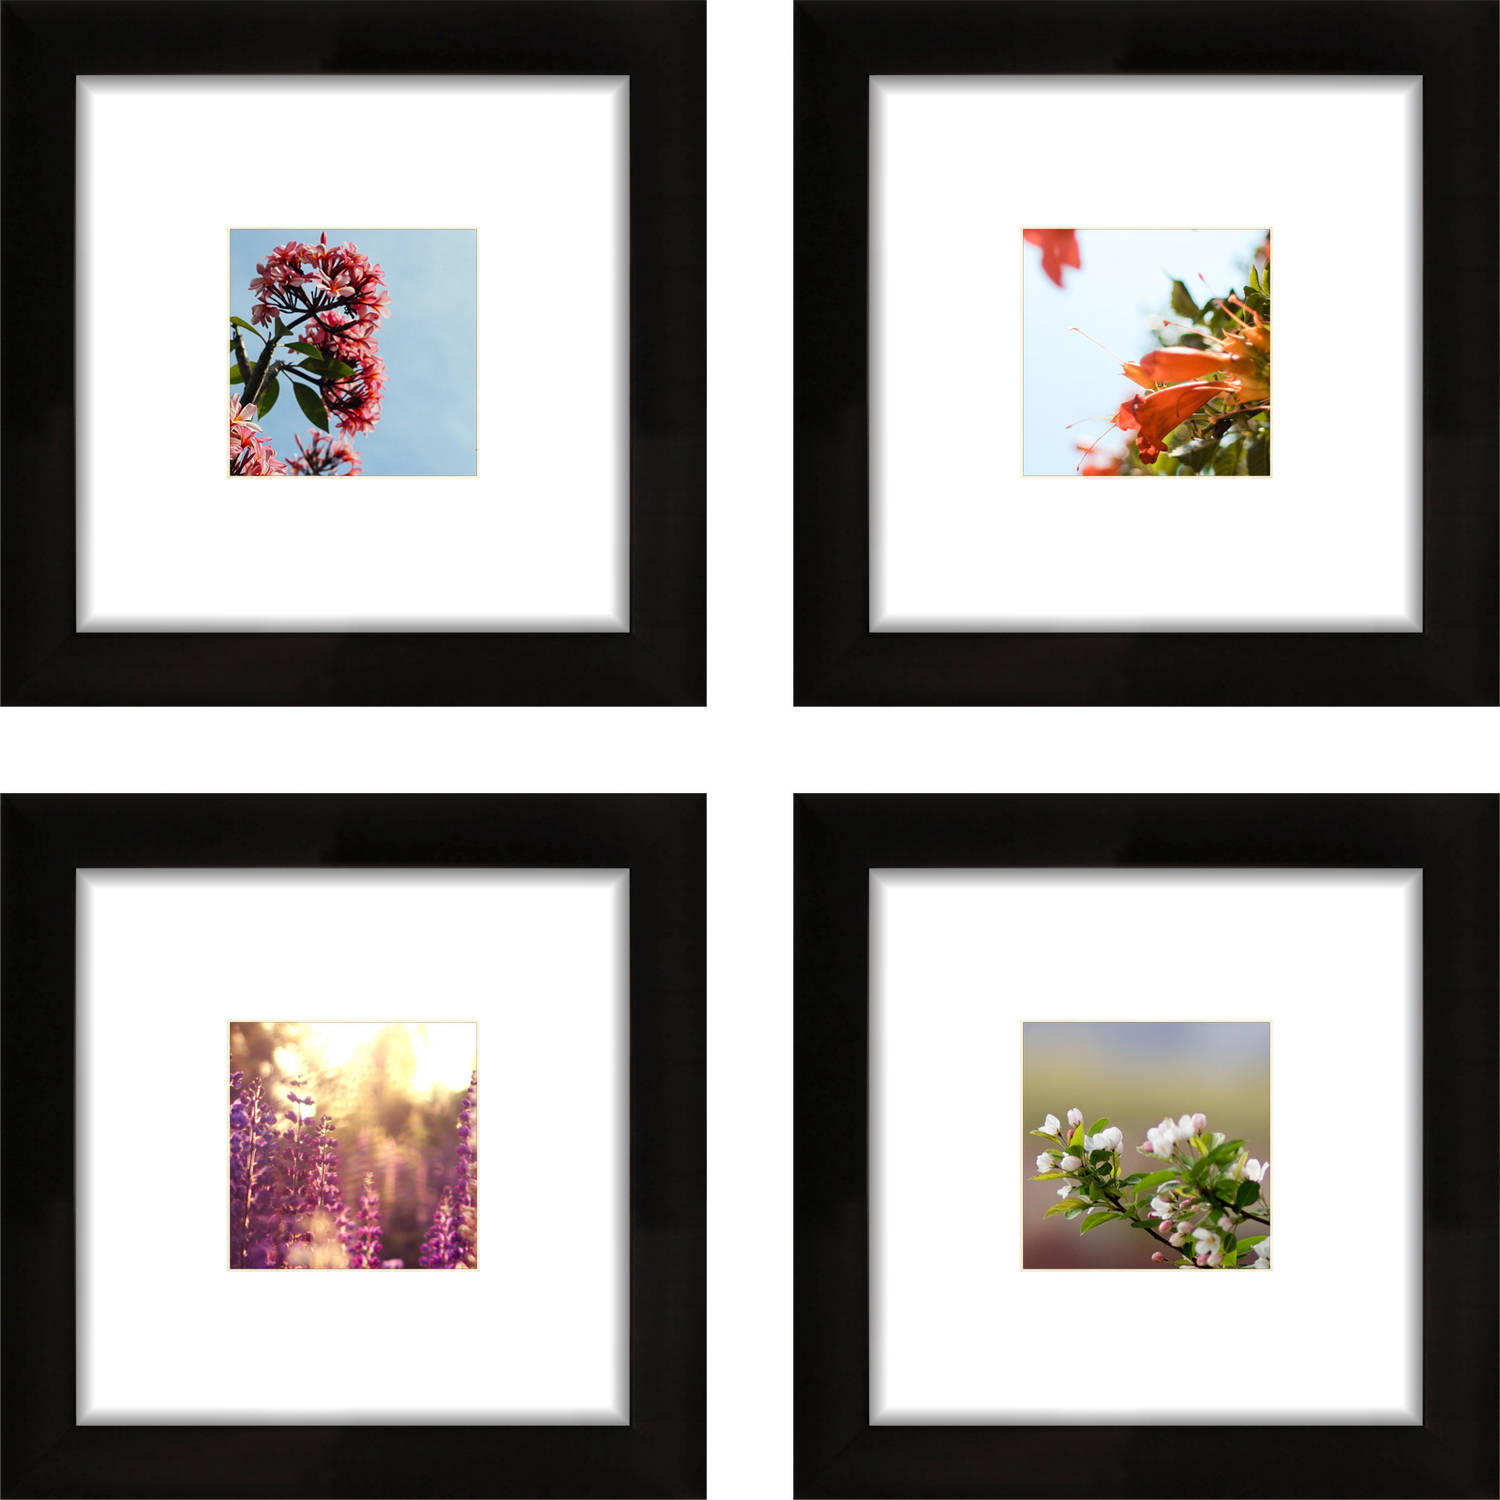 Craig Frames 8x8 Black Picture Frame Smartphone Collection Single